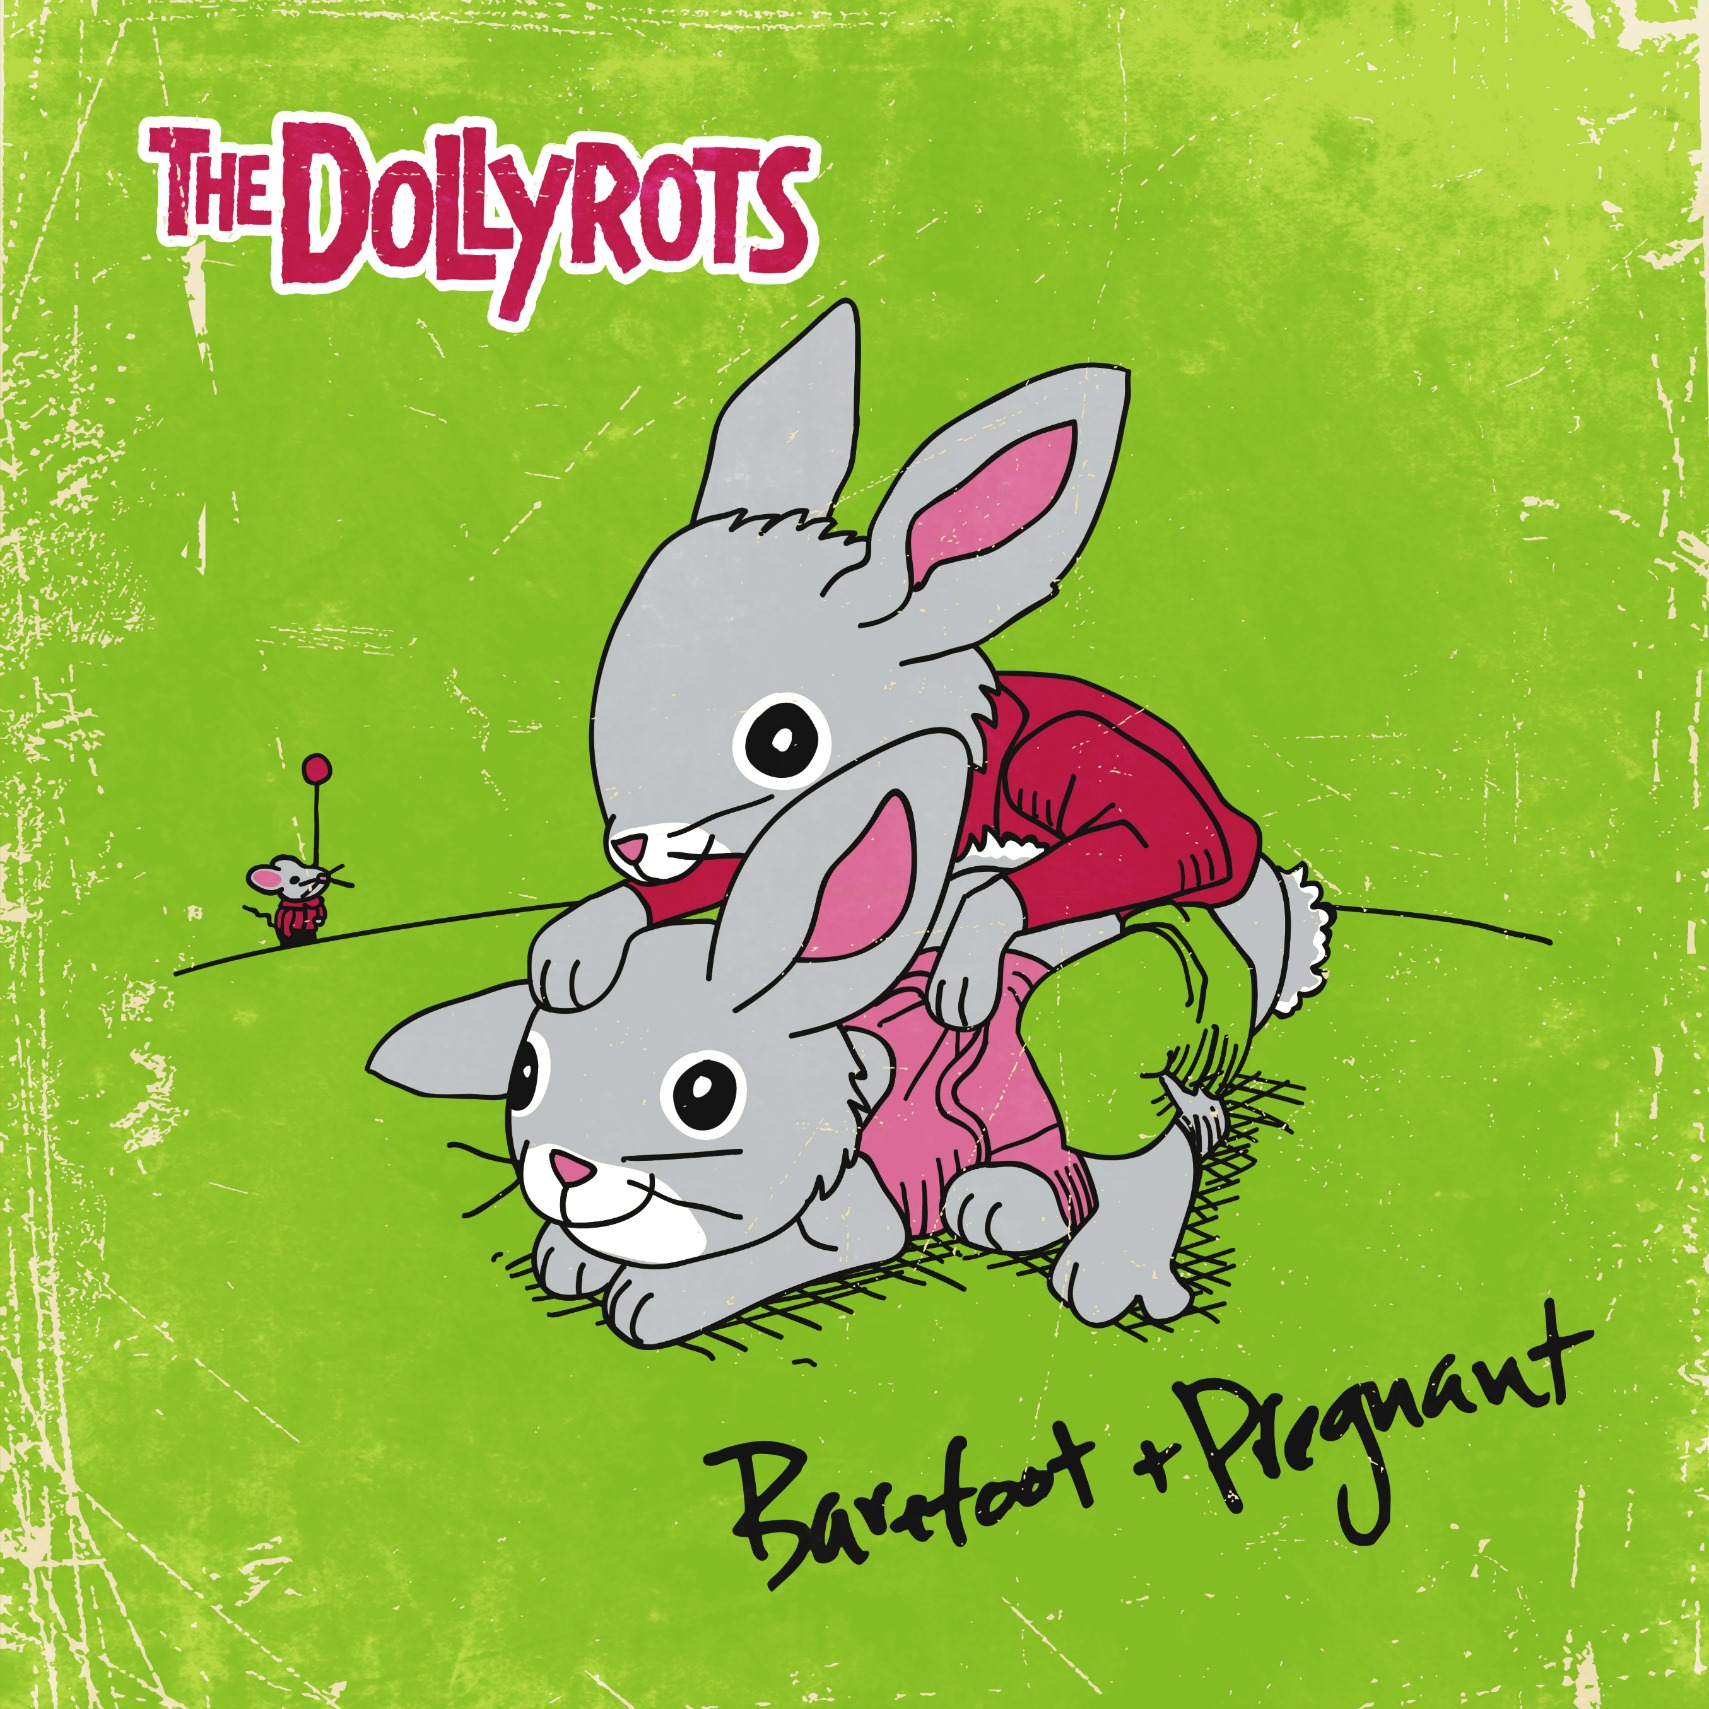 Tastes Like Rock - The Dollyrots - Barefoot and Pregnant Review